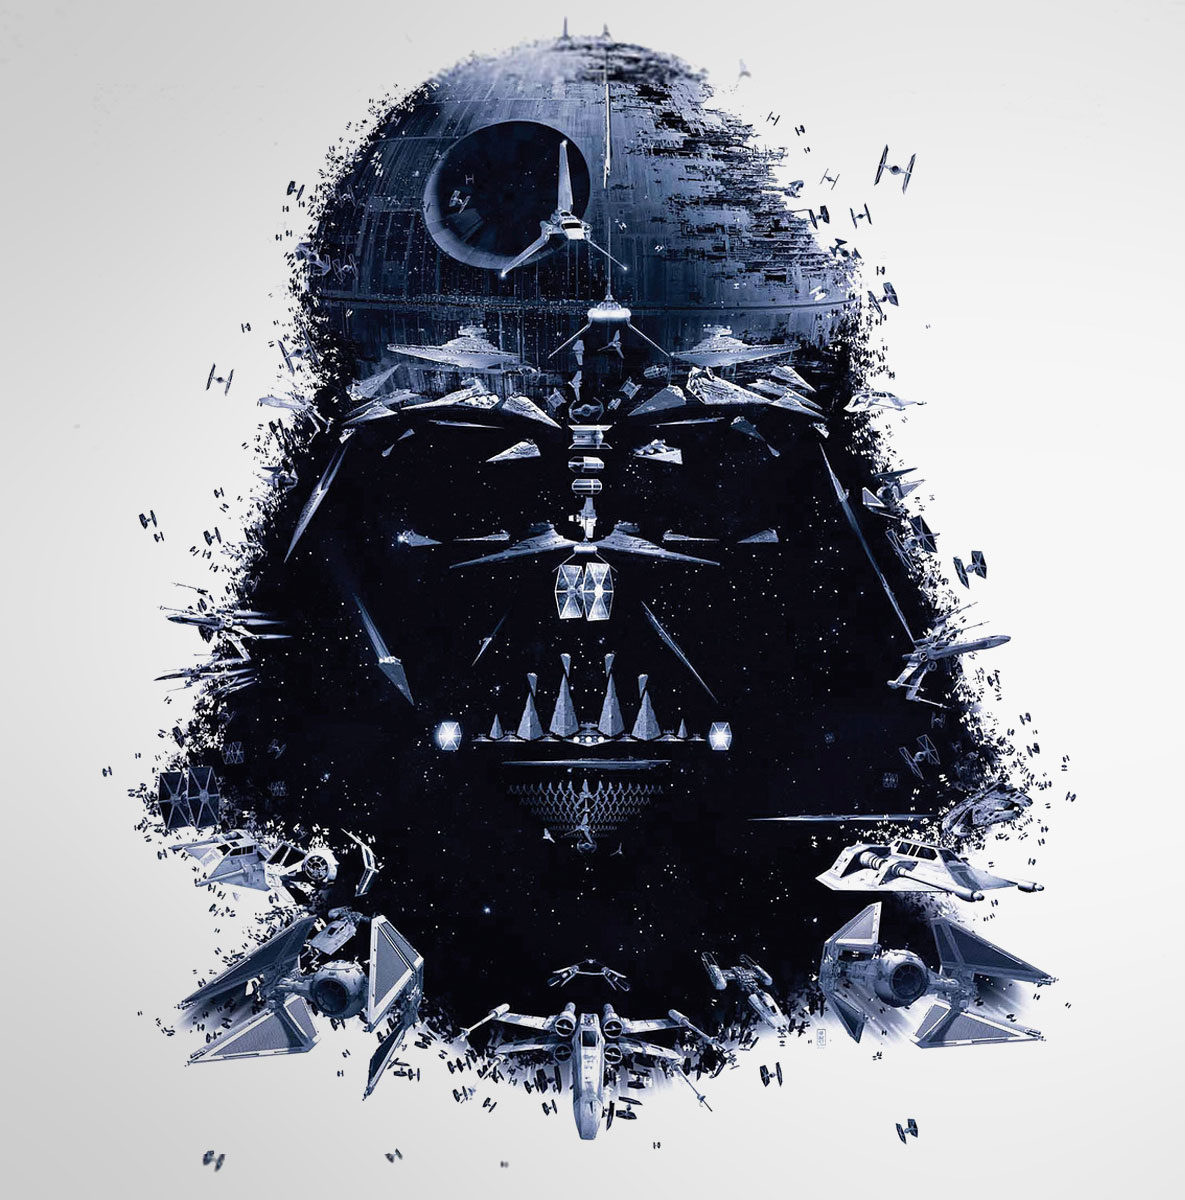 Star Wars Identities The Exhibition- Darth Vader/space crafts poster